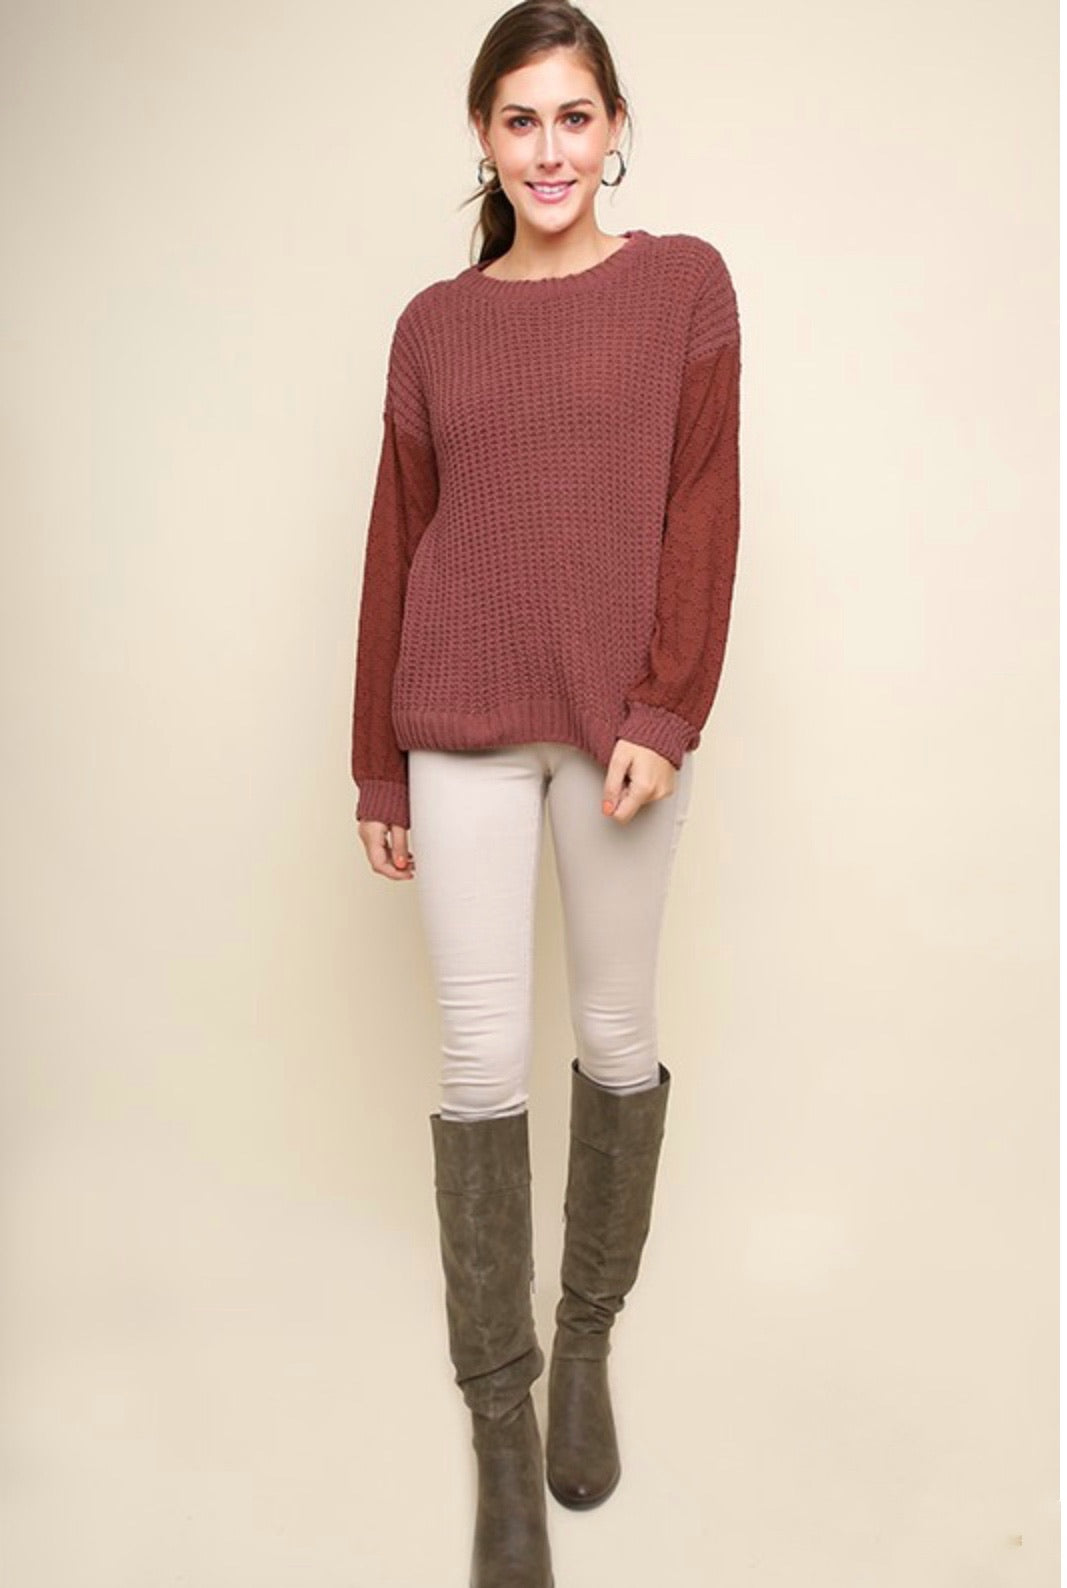 Rosewood Sweater w/ Poplin Lace Sleeve